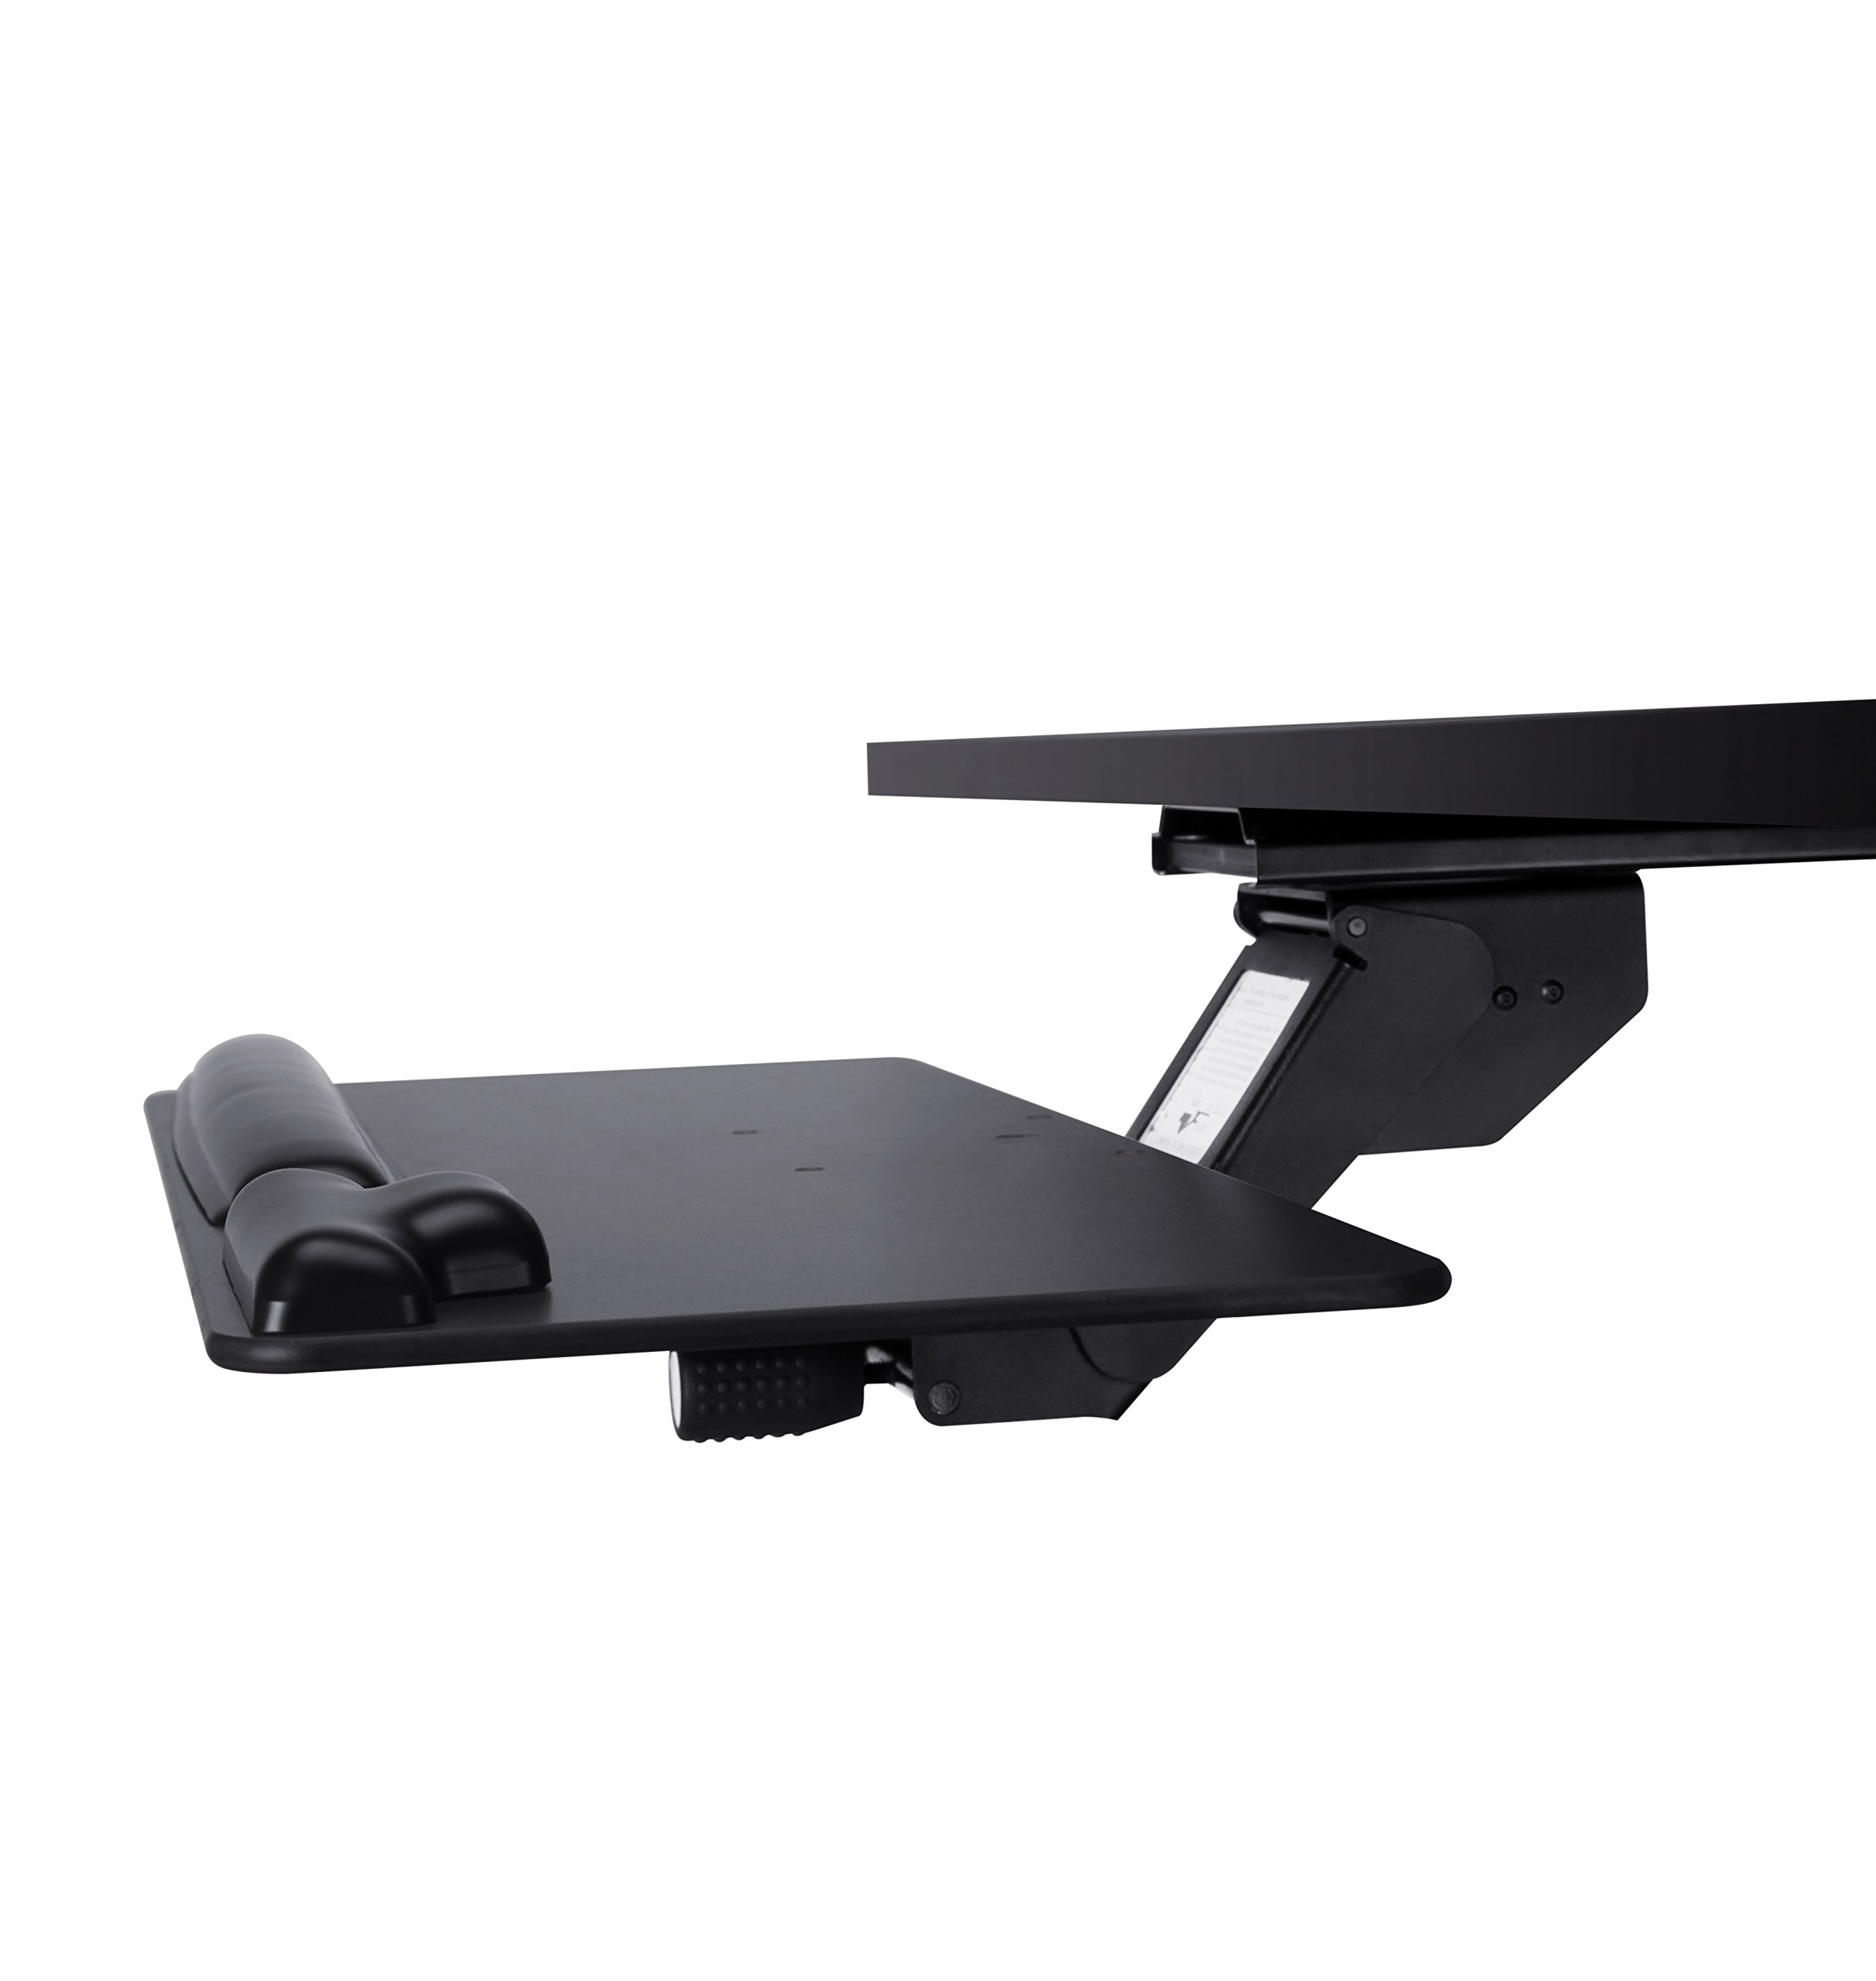 Keyboard Tray with Wood Platform, Just Lift to Adjust Height, Simply Turn Knob to Tilt, Swivels Under Desk, with Gel Wrist Rest and Mouse Pad